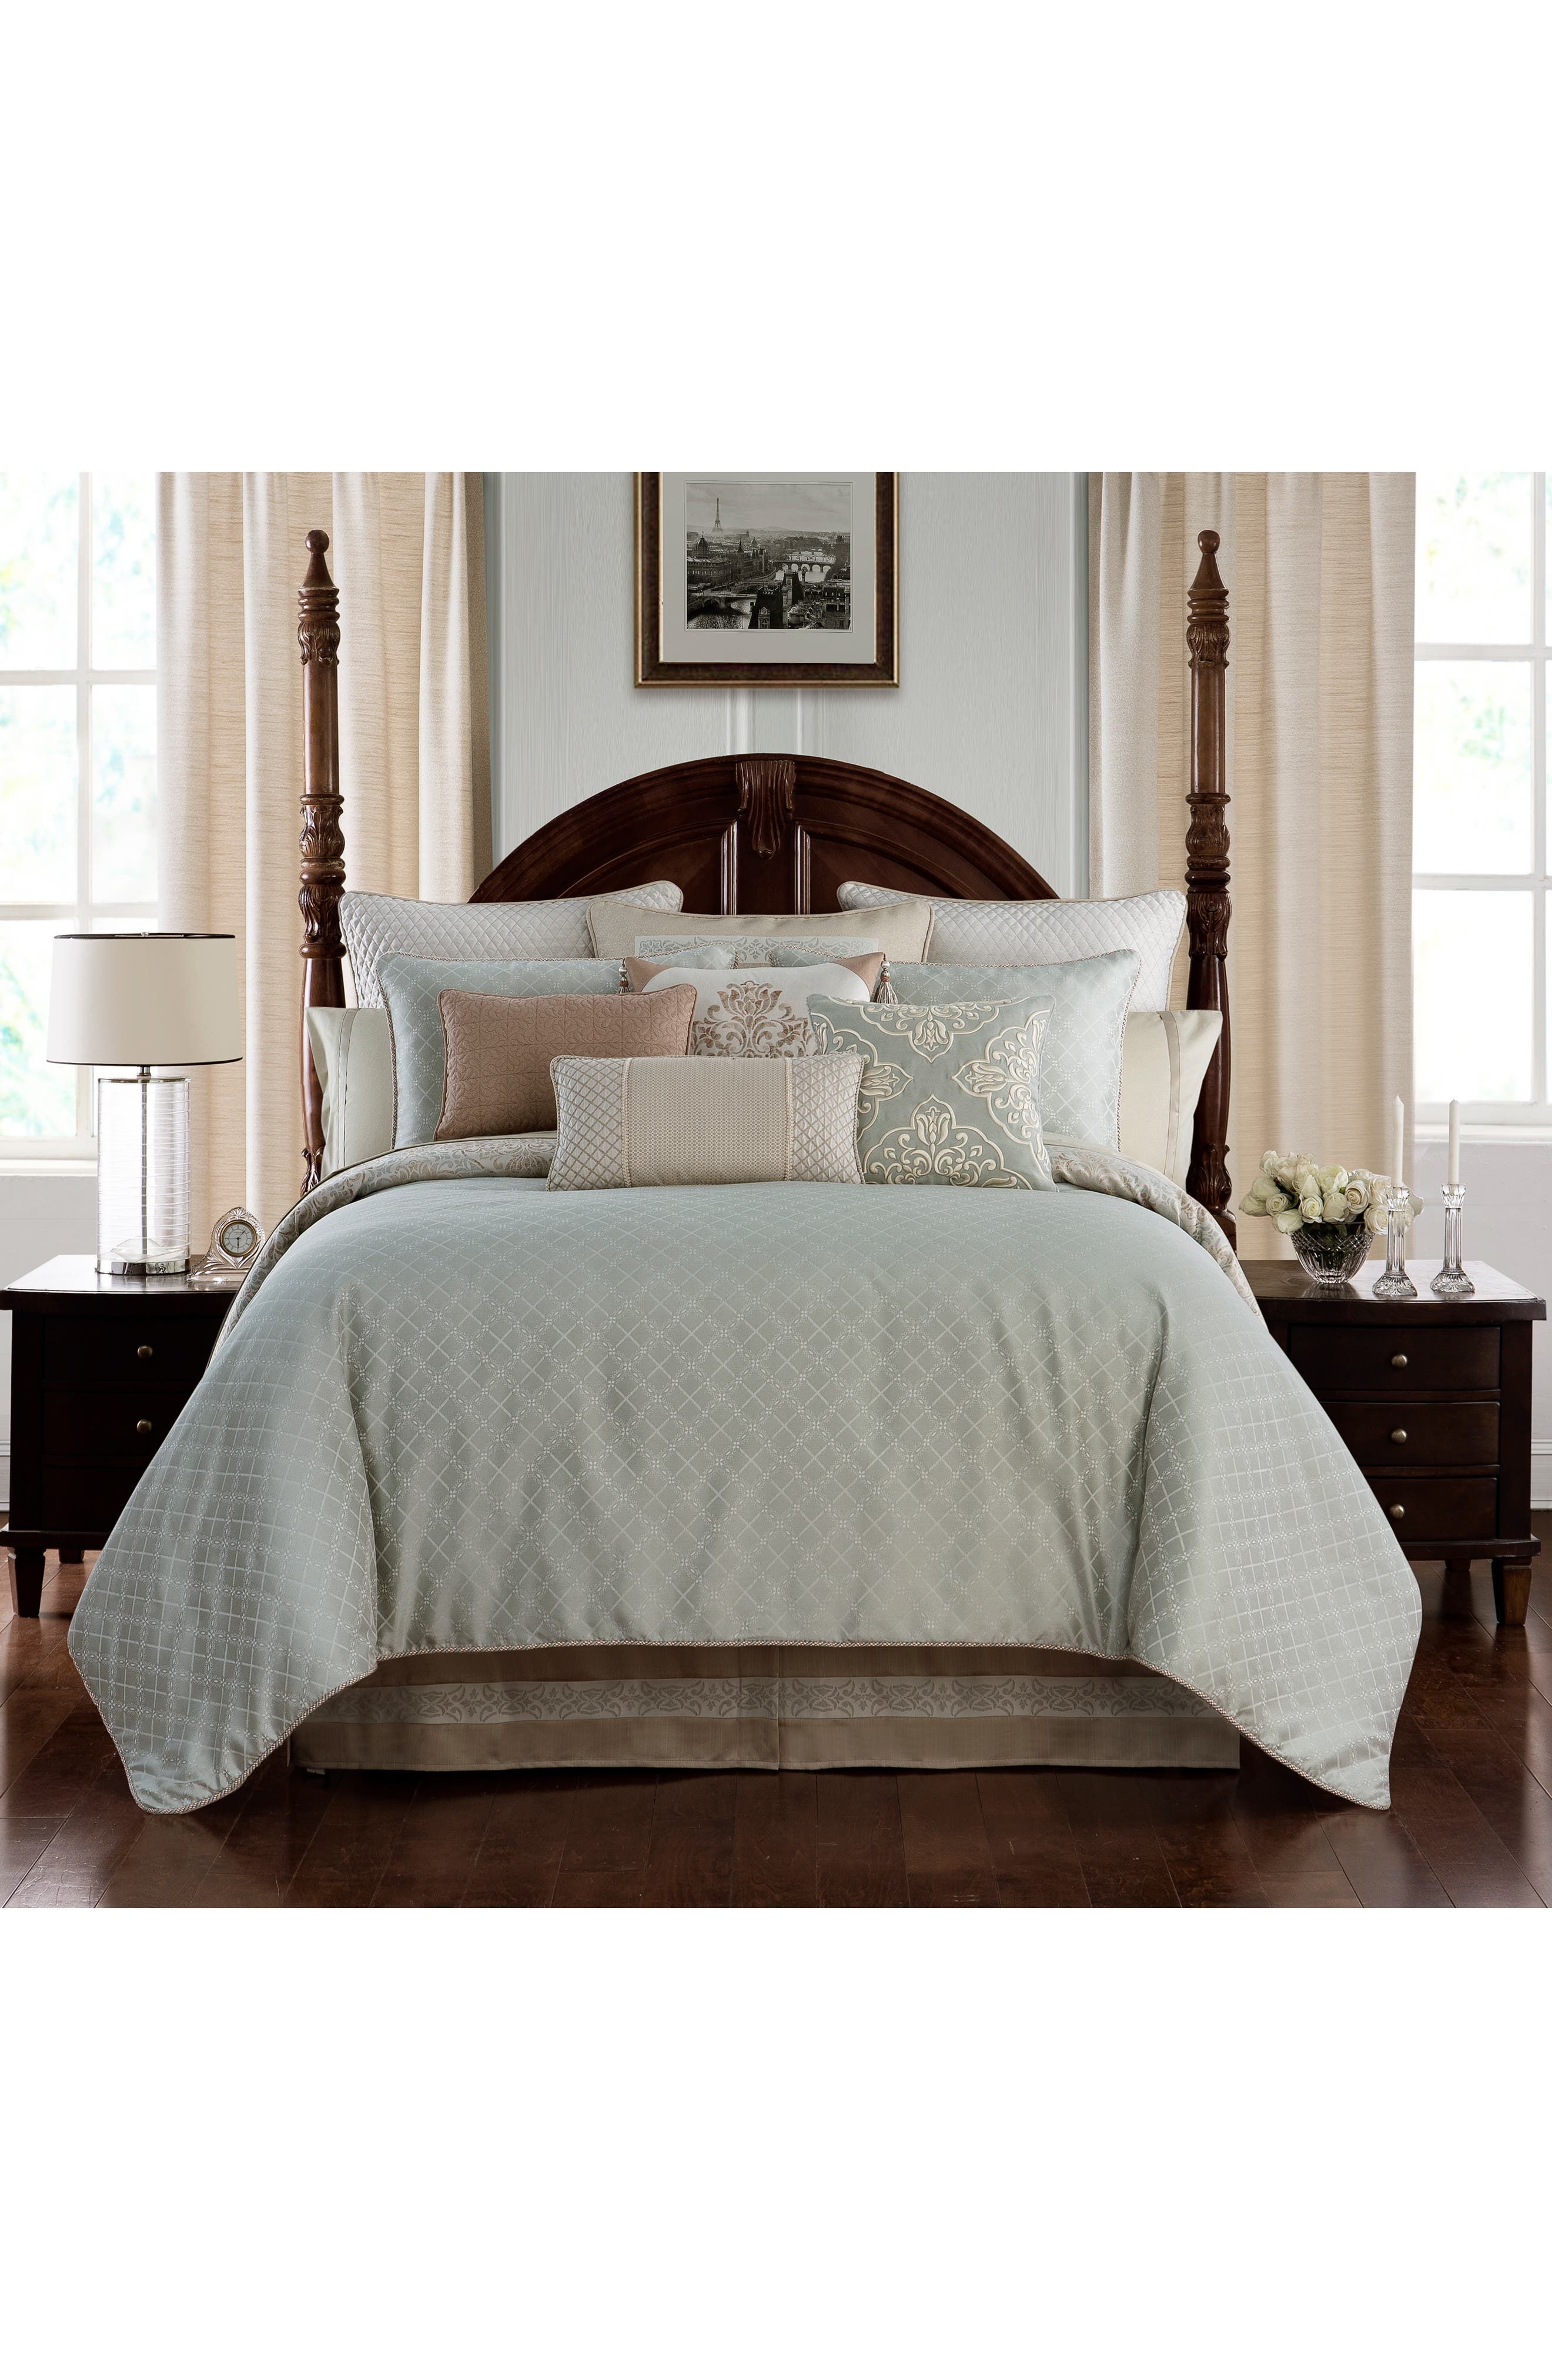 WATERFORD, Gwyneth Reversible Comforter, Sham & Bedskirt Set, Alternate thumbnail 2, color, PALE BLUE